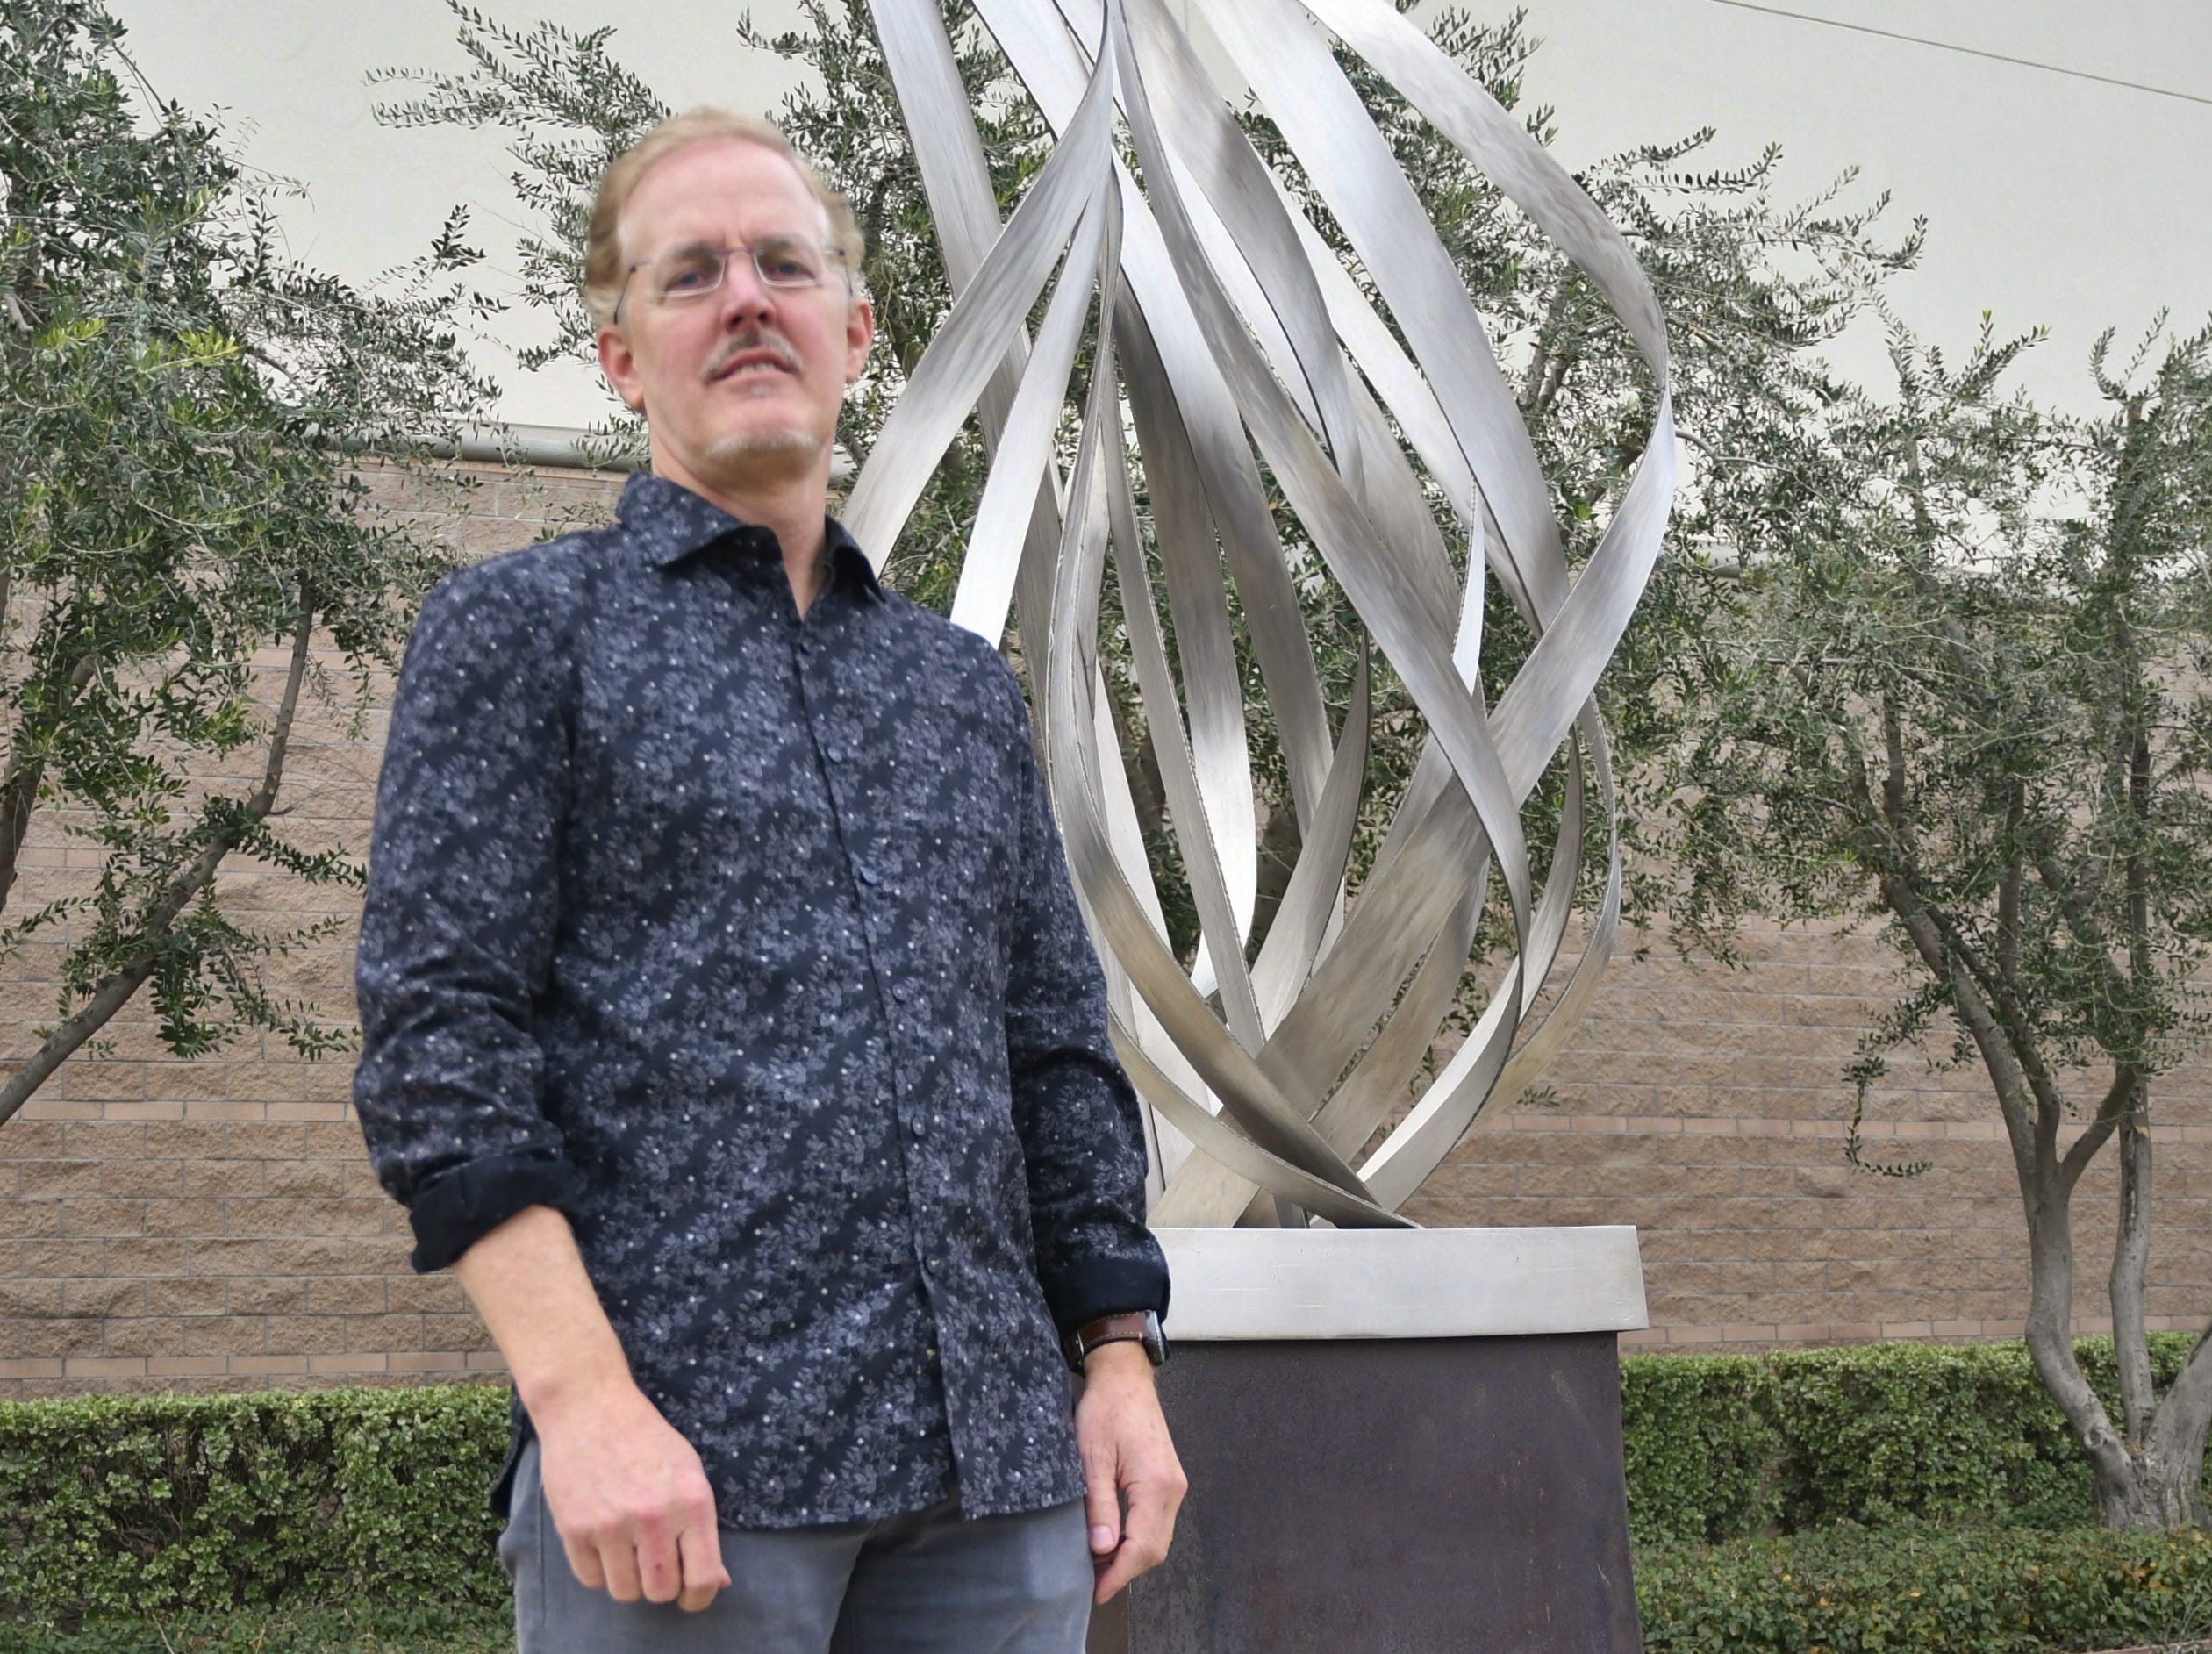 Eric Peltzer's career in sculptures forged in hometown of Visalia